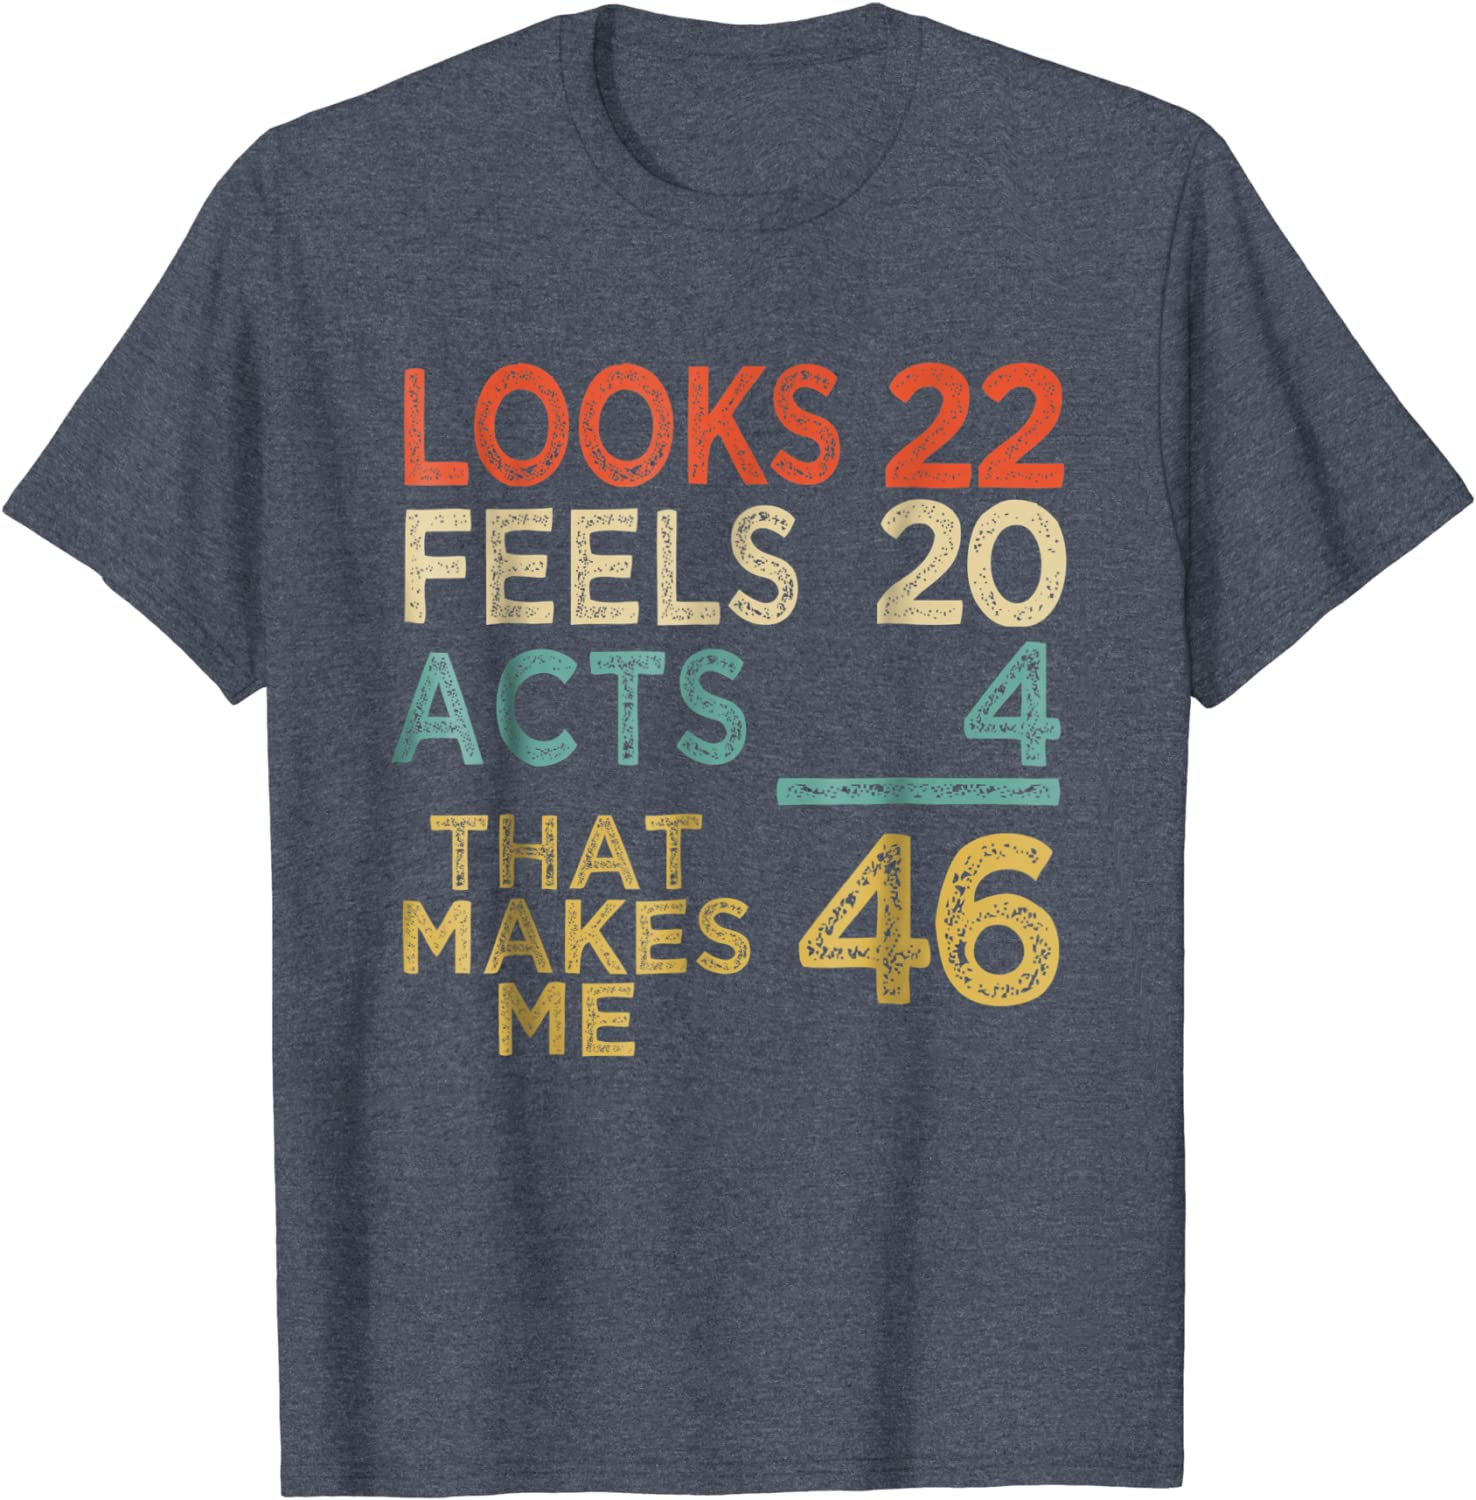 Looks Feels Acts That Makes Me 72 72nd birthday gifts for men gift for 72nd Birthday Party 72nd birthday tshirt 72nd birthday gift